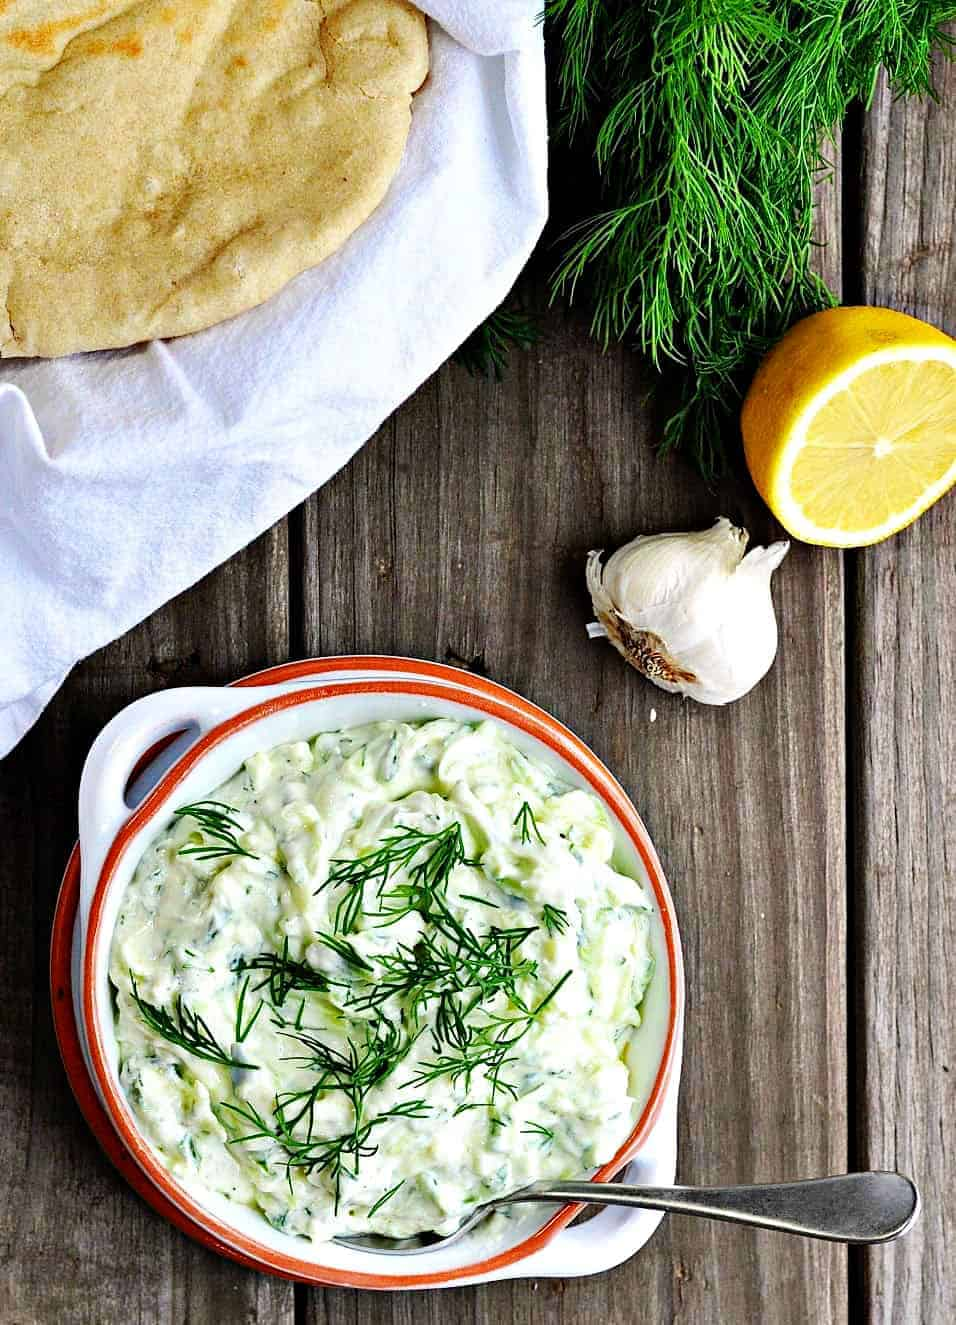 Tzatziki Sauce served with pita bread